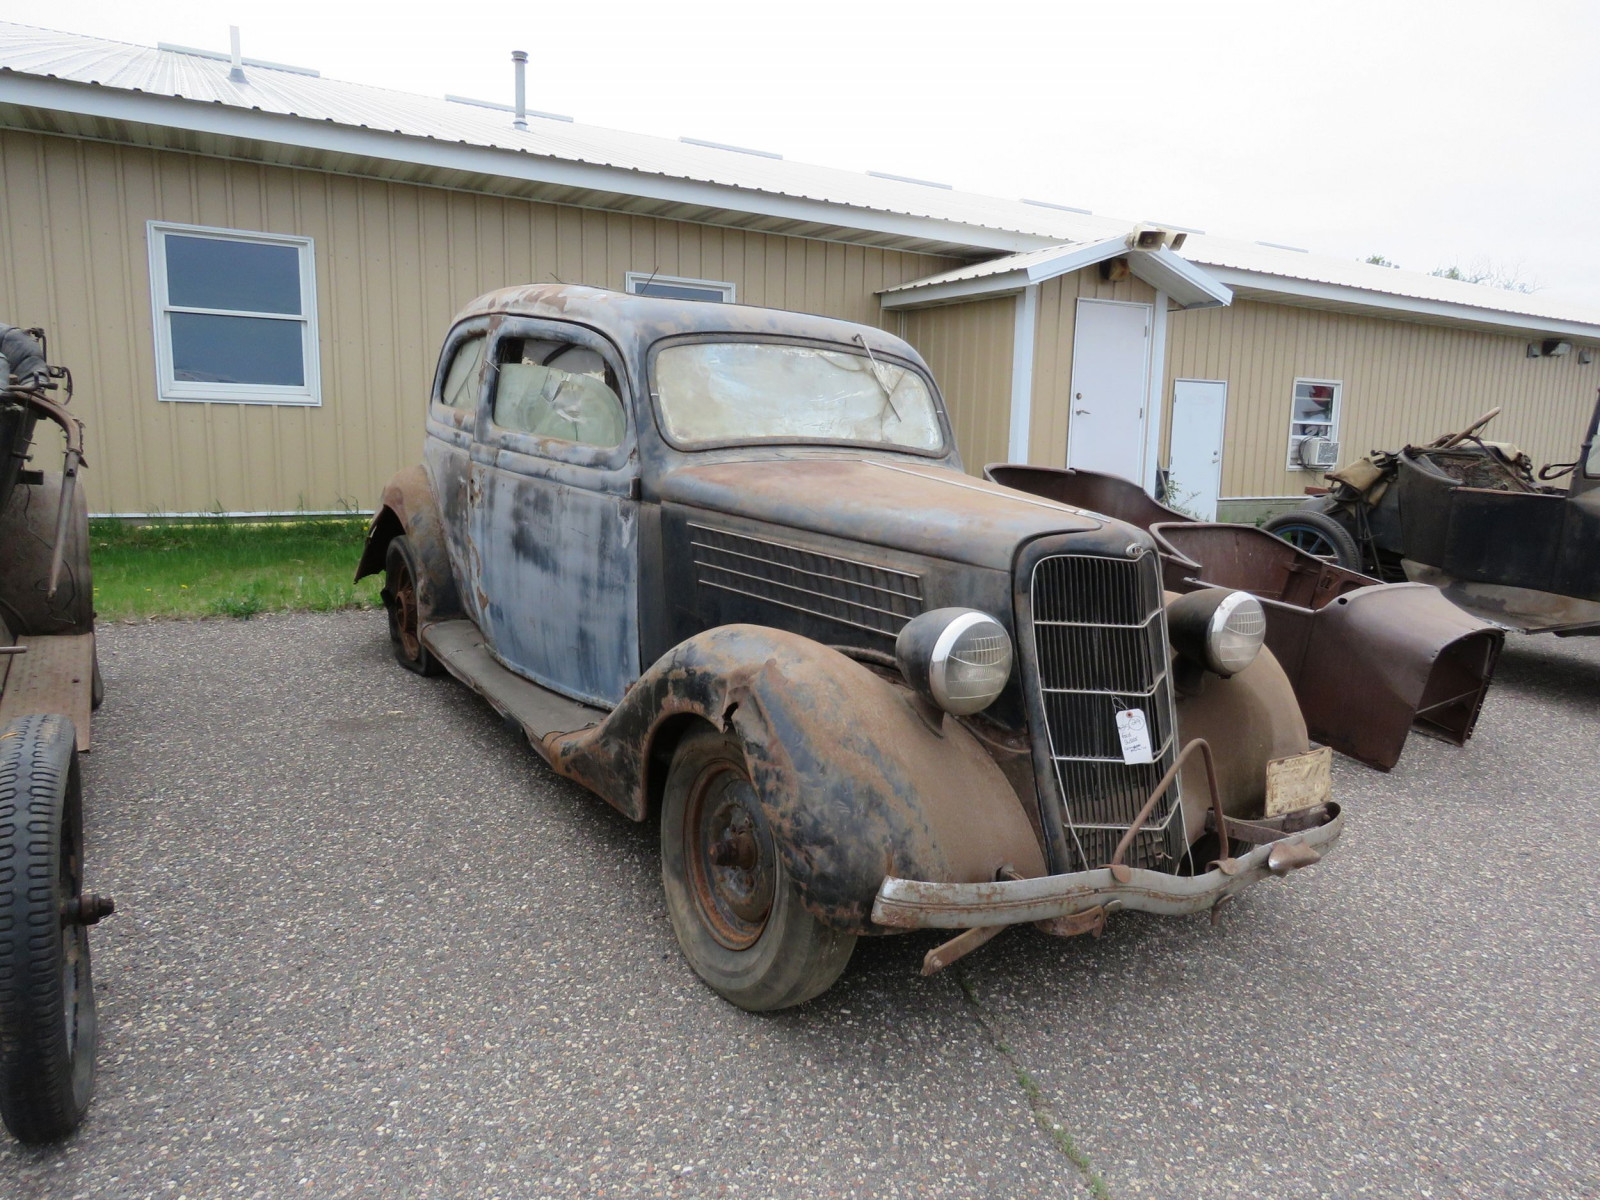 1935 Ford Tudor Sedan for Project or Parts - Image 1